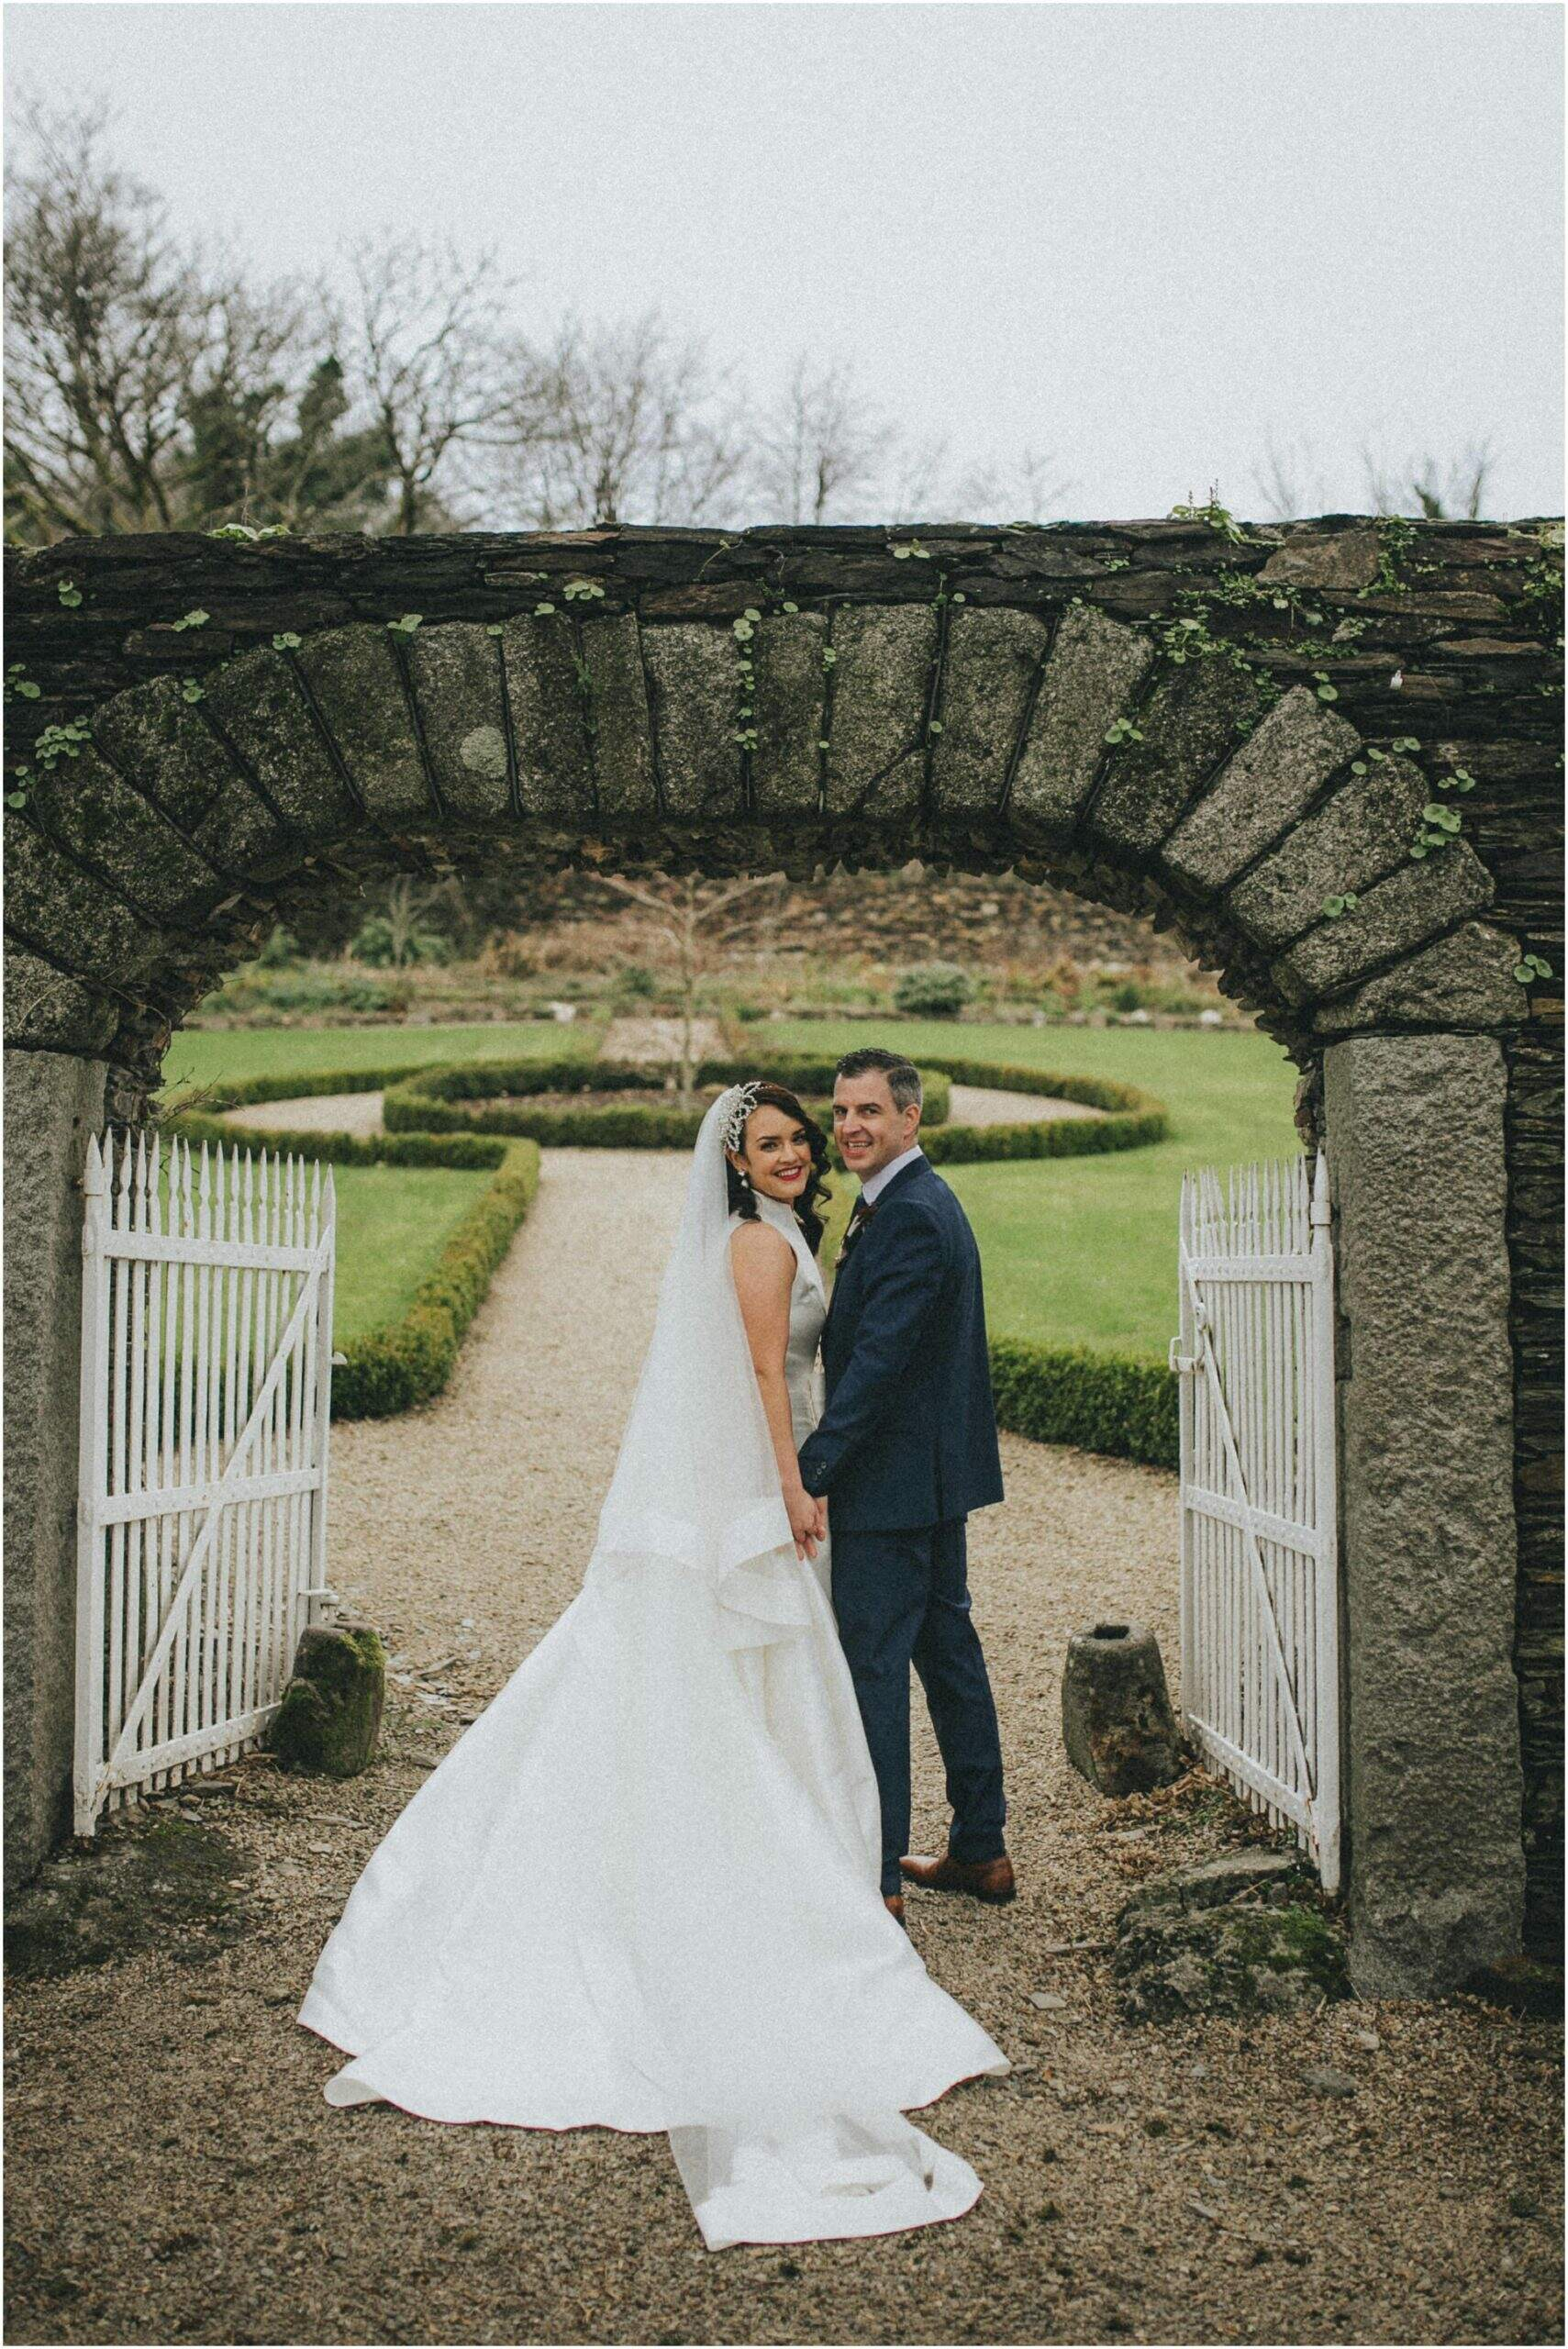 Ballybeg house wicklow fun relaxed wedding00106 scaled - Fun and Relaxed wedding and elopement photography in Ireland, perfect for adventurous and outdoorsy couples